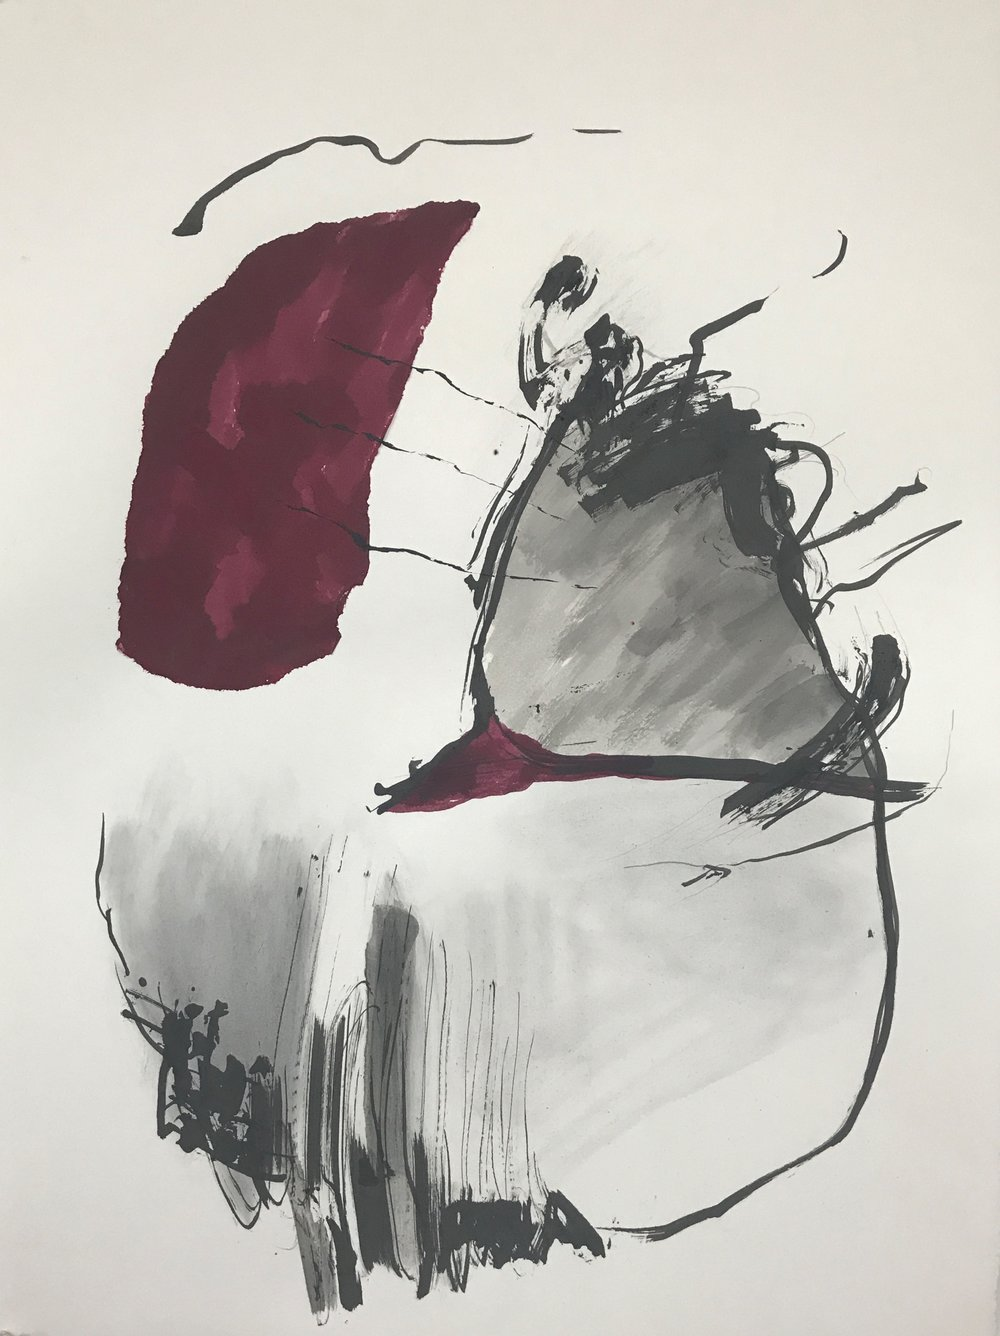 COCHINEAL DRAWING # 1